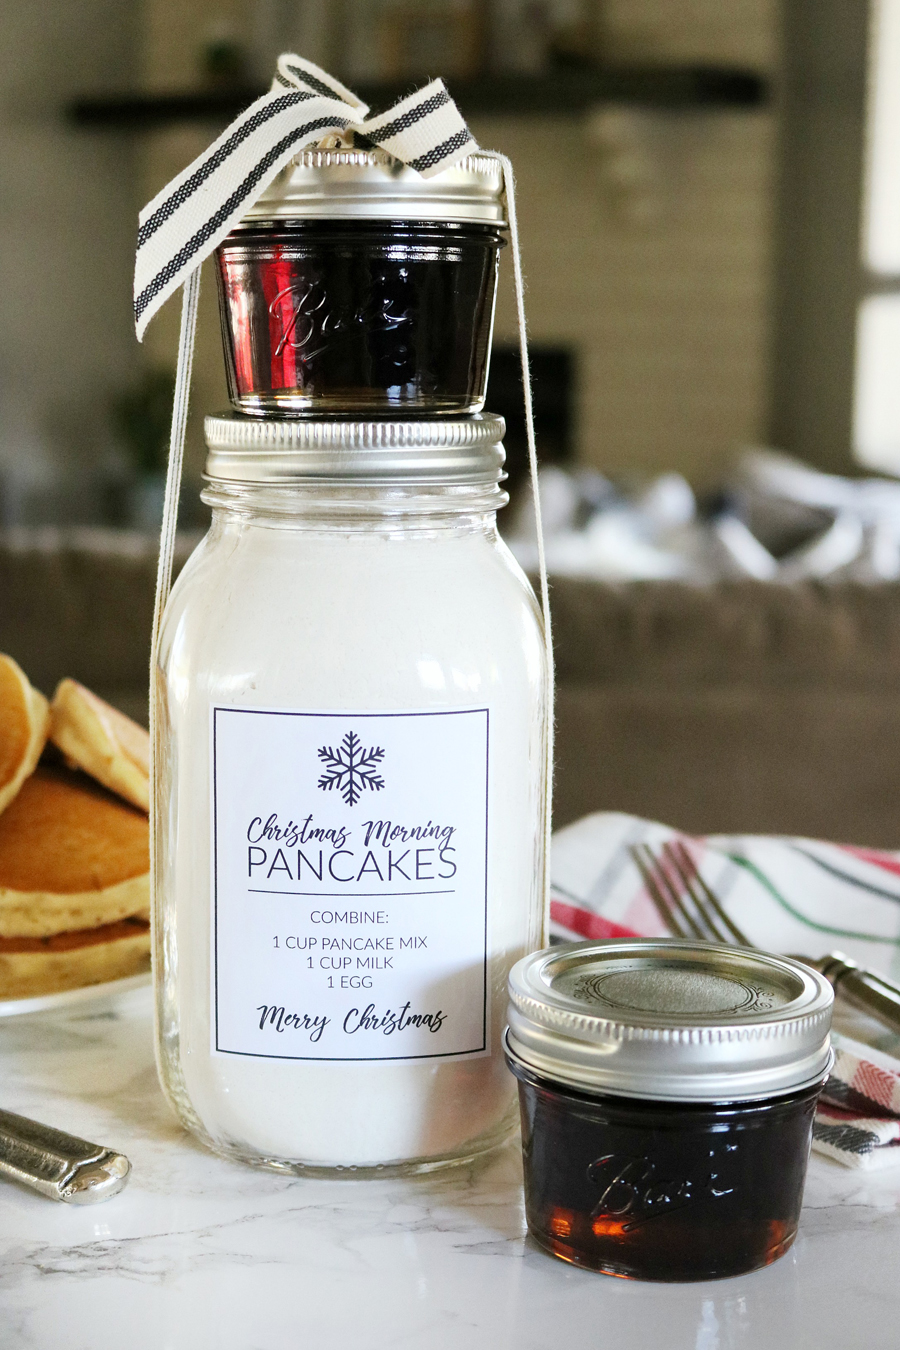 Christmas Morning Pancakes in a Jar Gift Idea